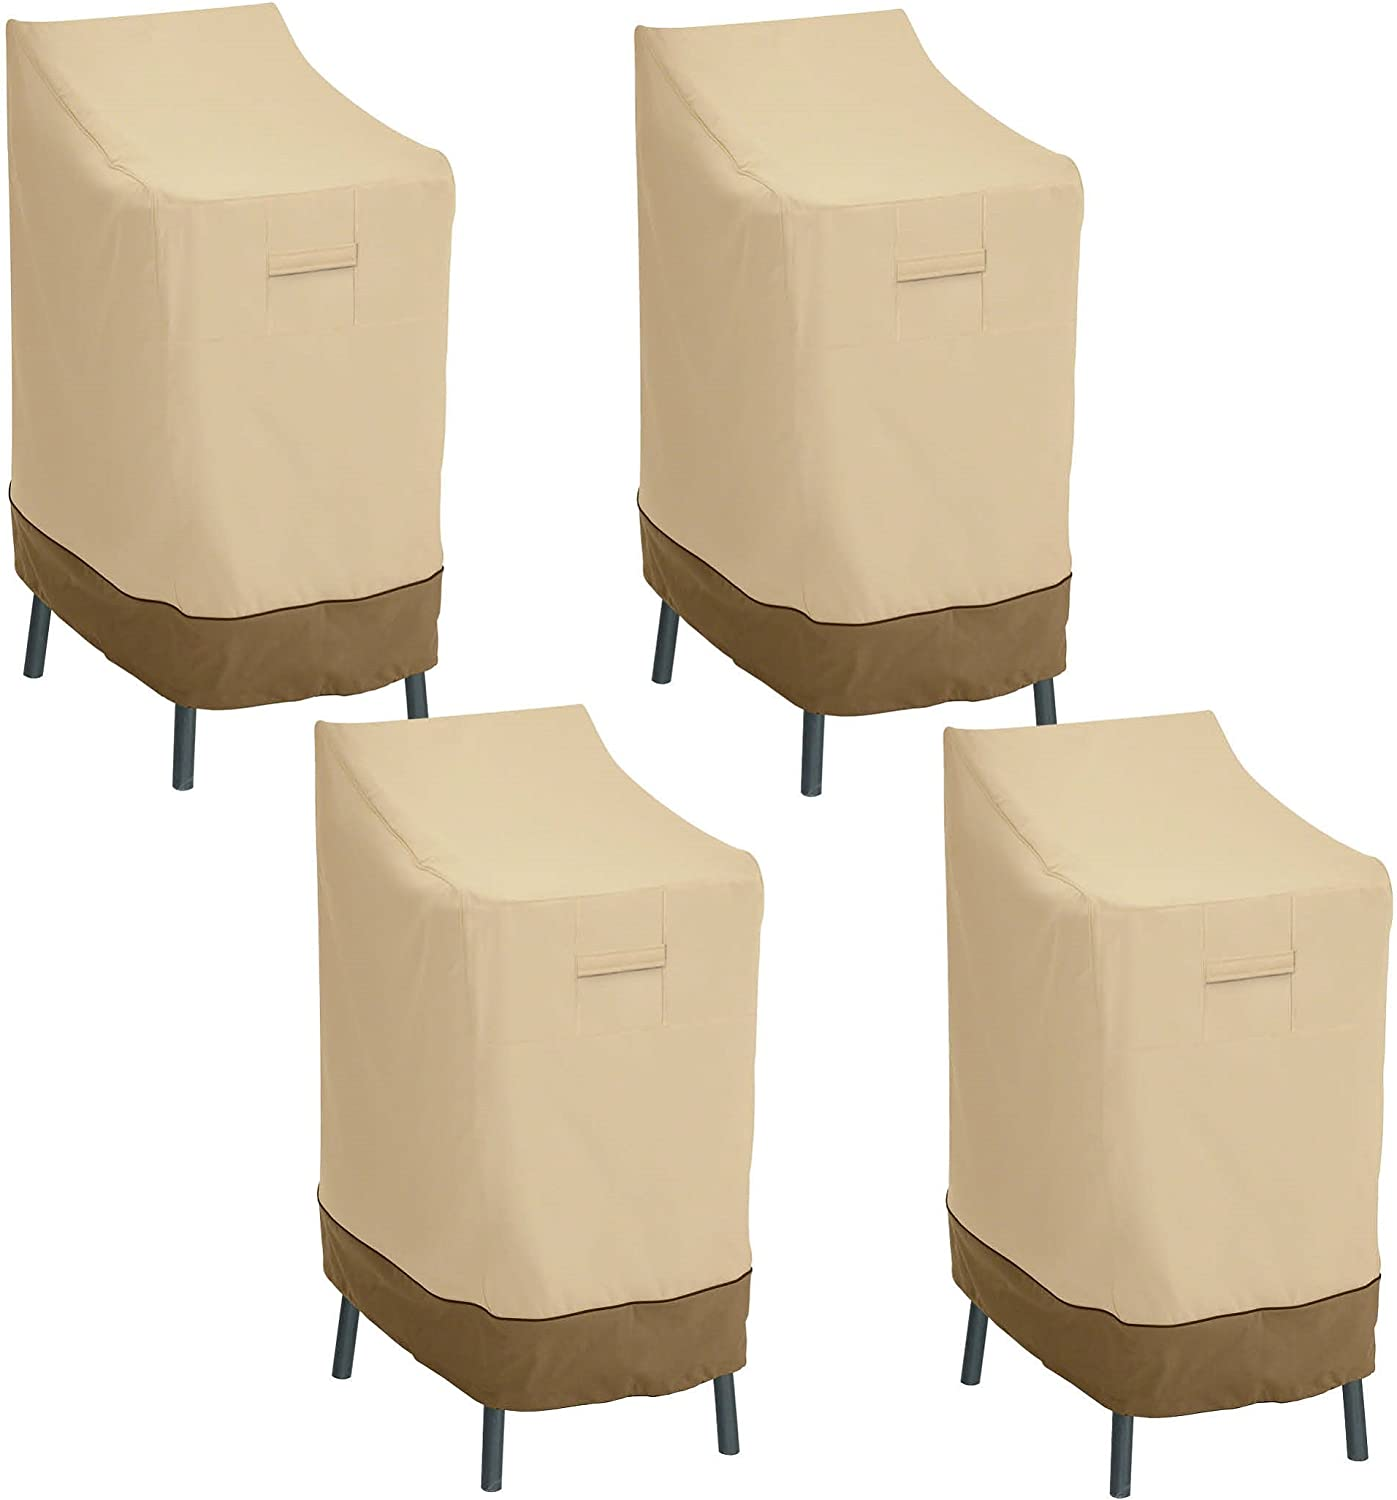 Classic Accessories Veranda Patio Bar Chair/Stool Cover (4-Pack)